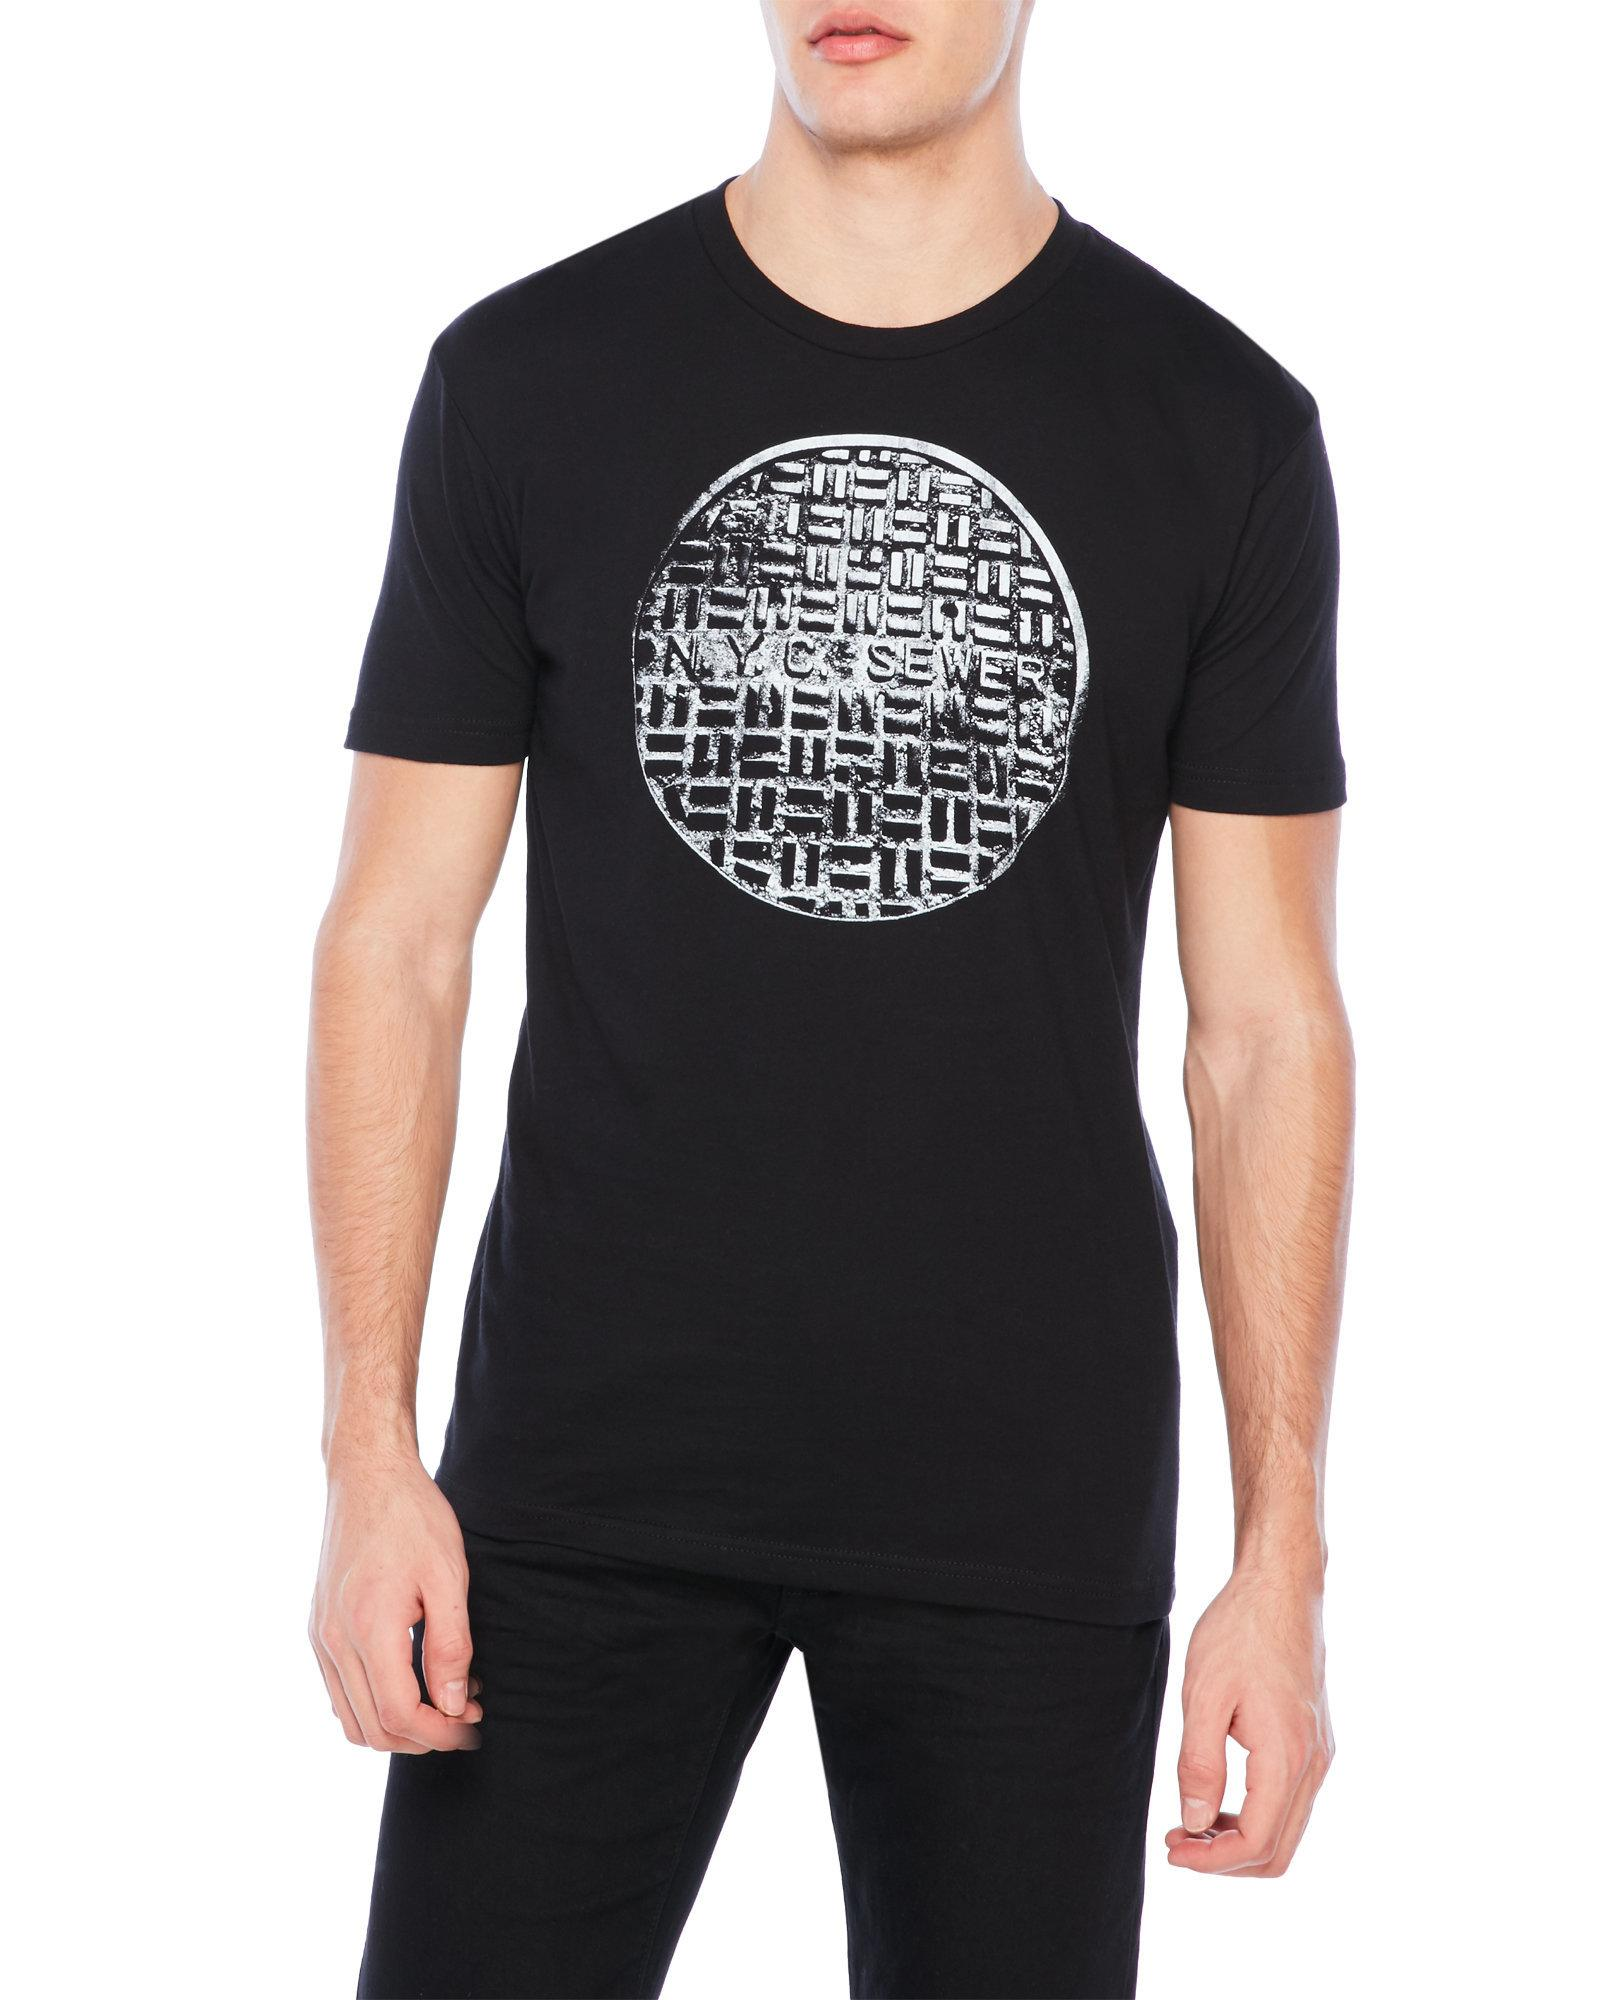 Five crown nyc sewer tee in black for men lyst for Century 21 dress shirts